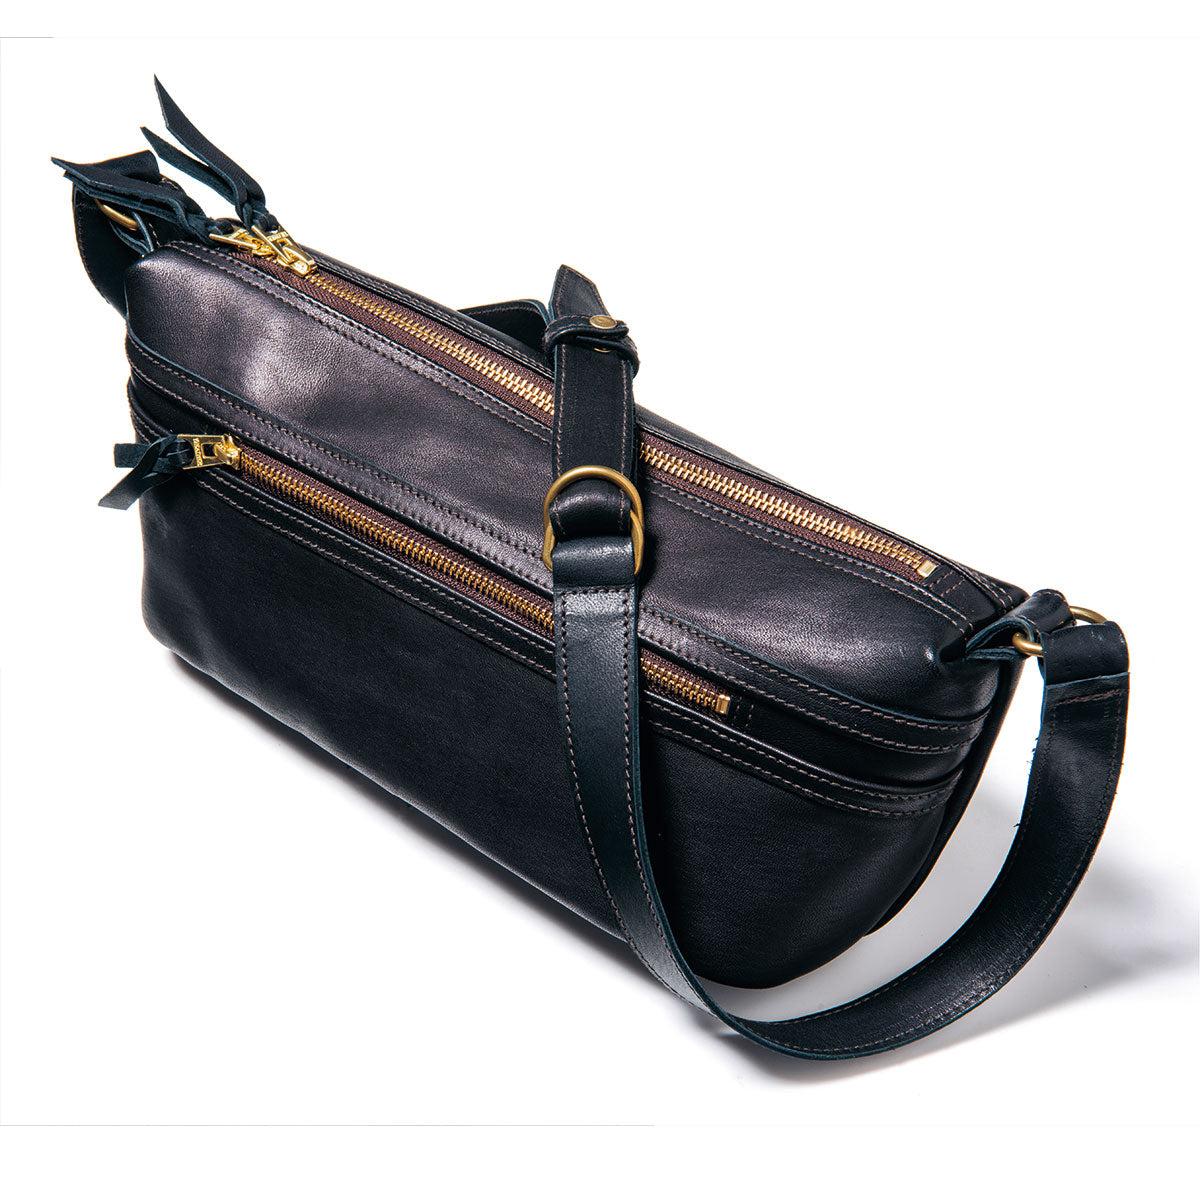 Pre-Order: Horsehide Shoulder Bag in Black Eco Horse (BG-02)